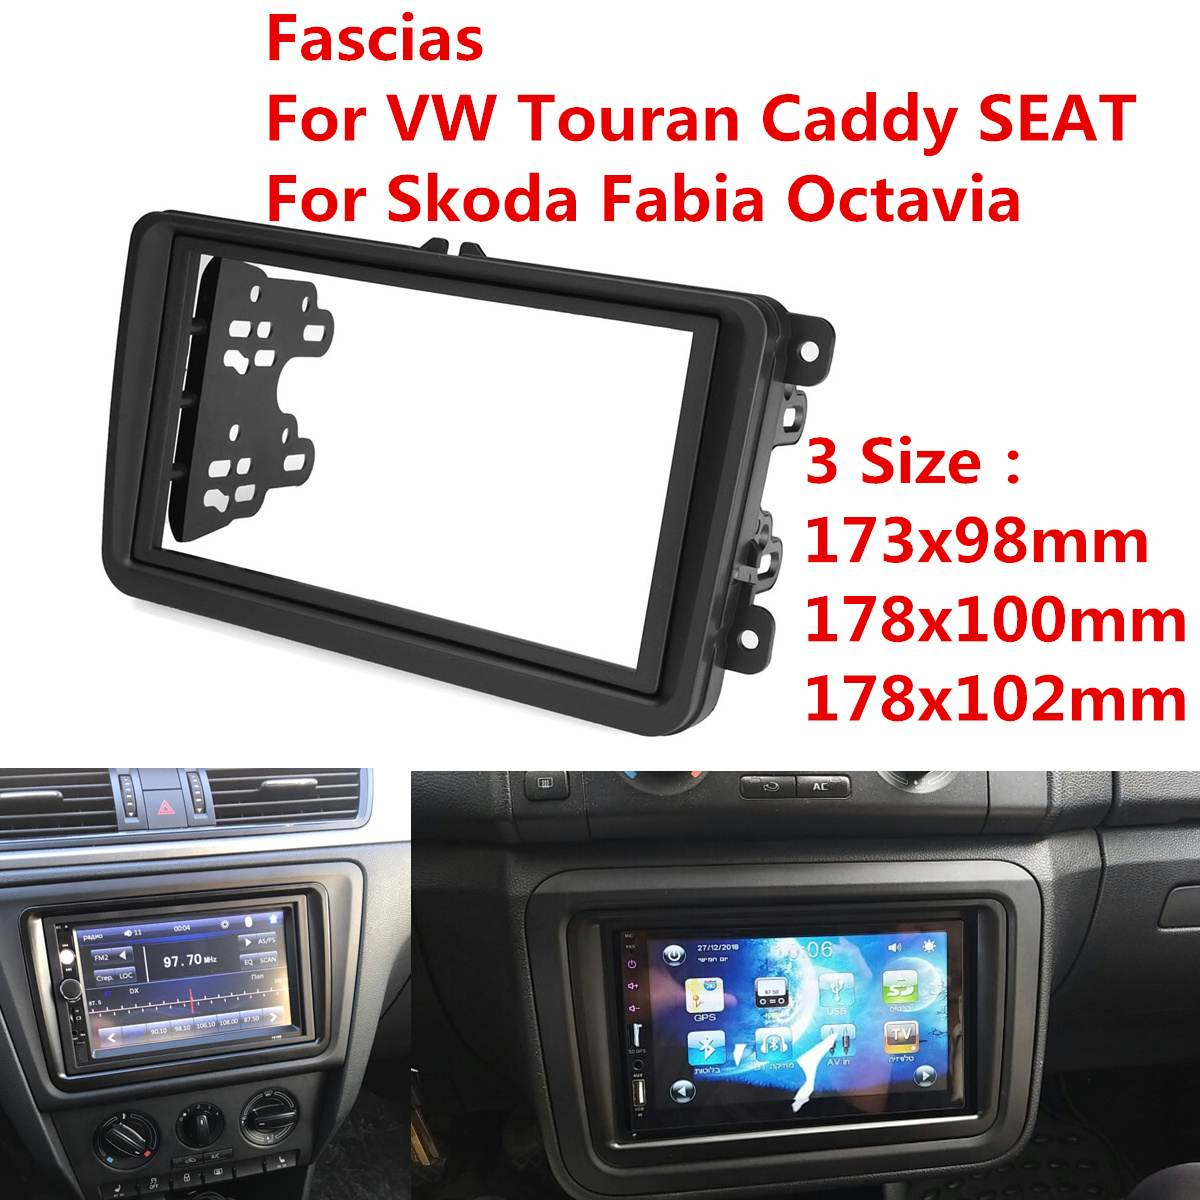 2 Din Car Radio Fascia PVC Marco de panel CD DVD Dash de Interior para Volkswagen VW Touran Caddy asiento Skoda Fabia Octavia